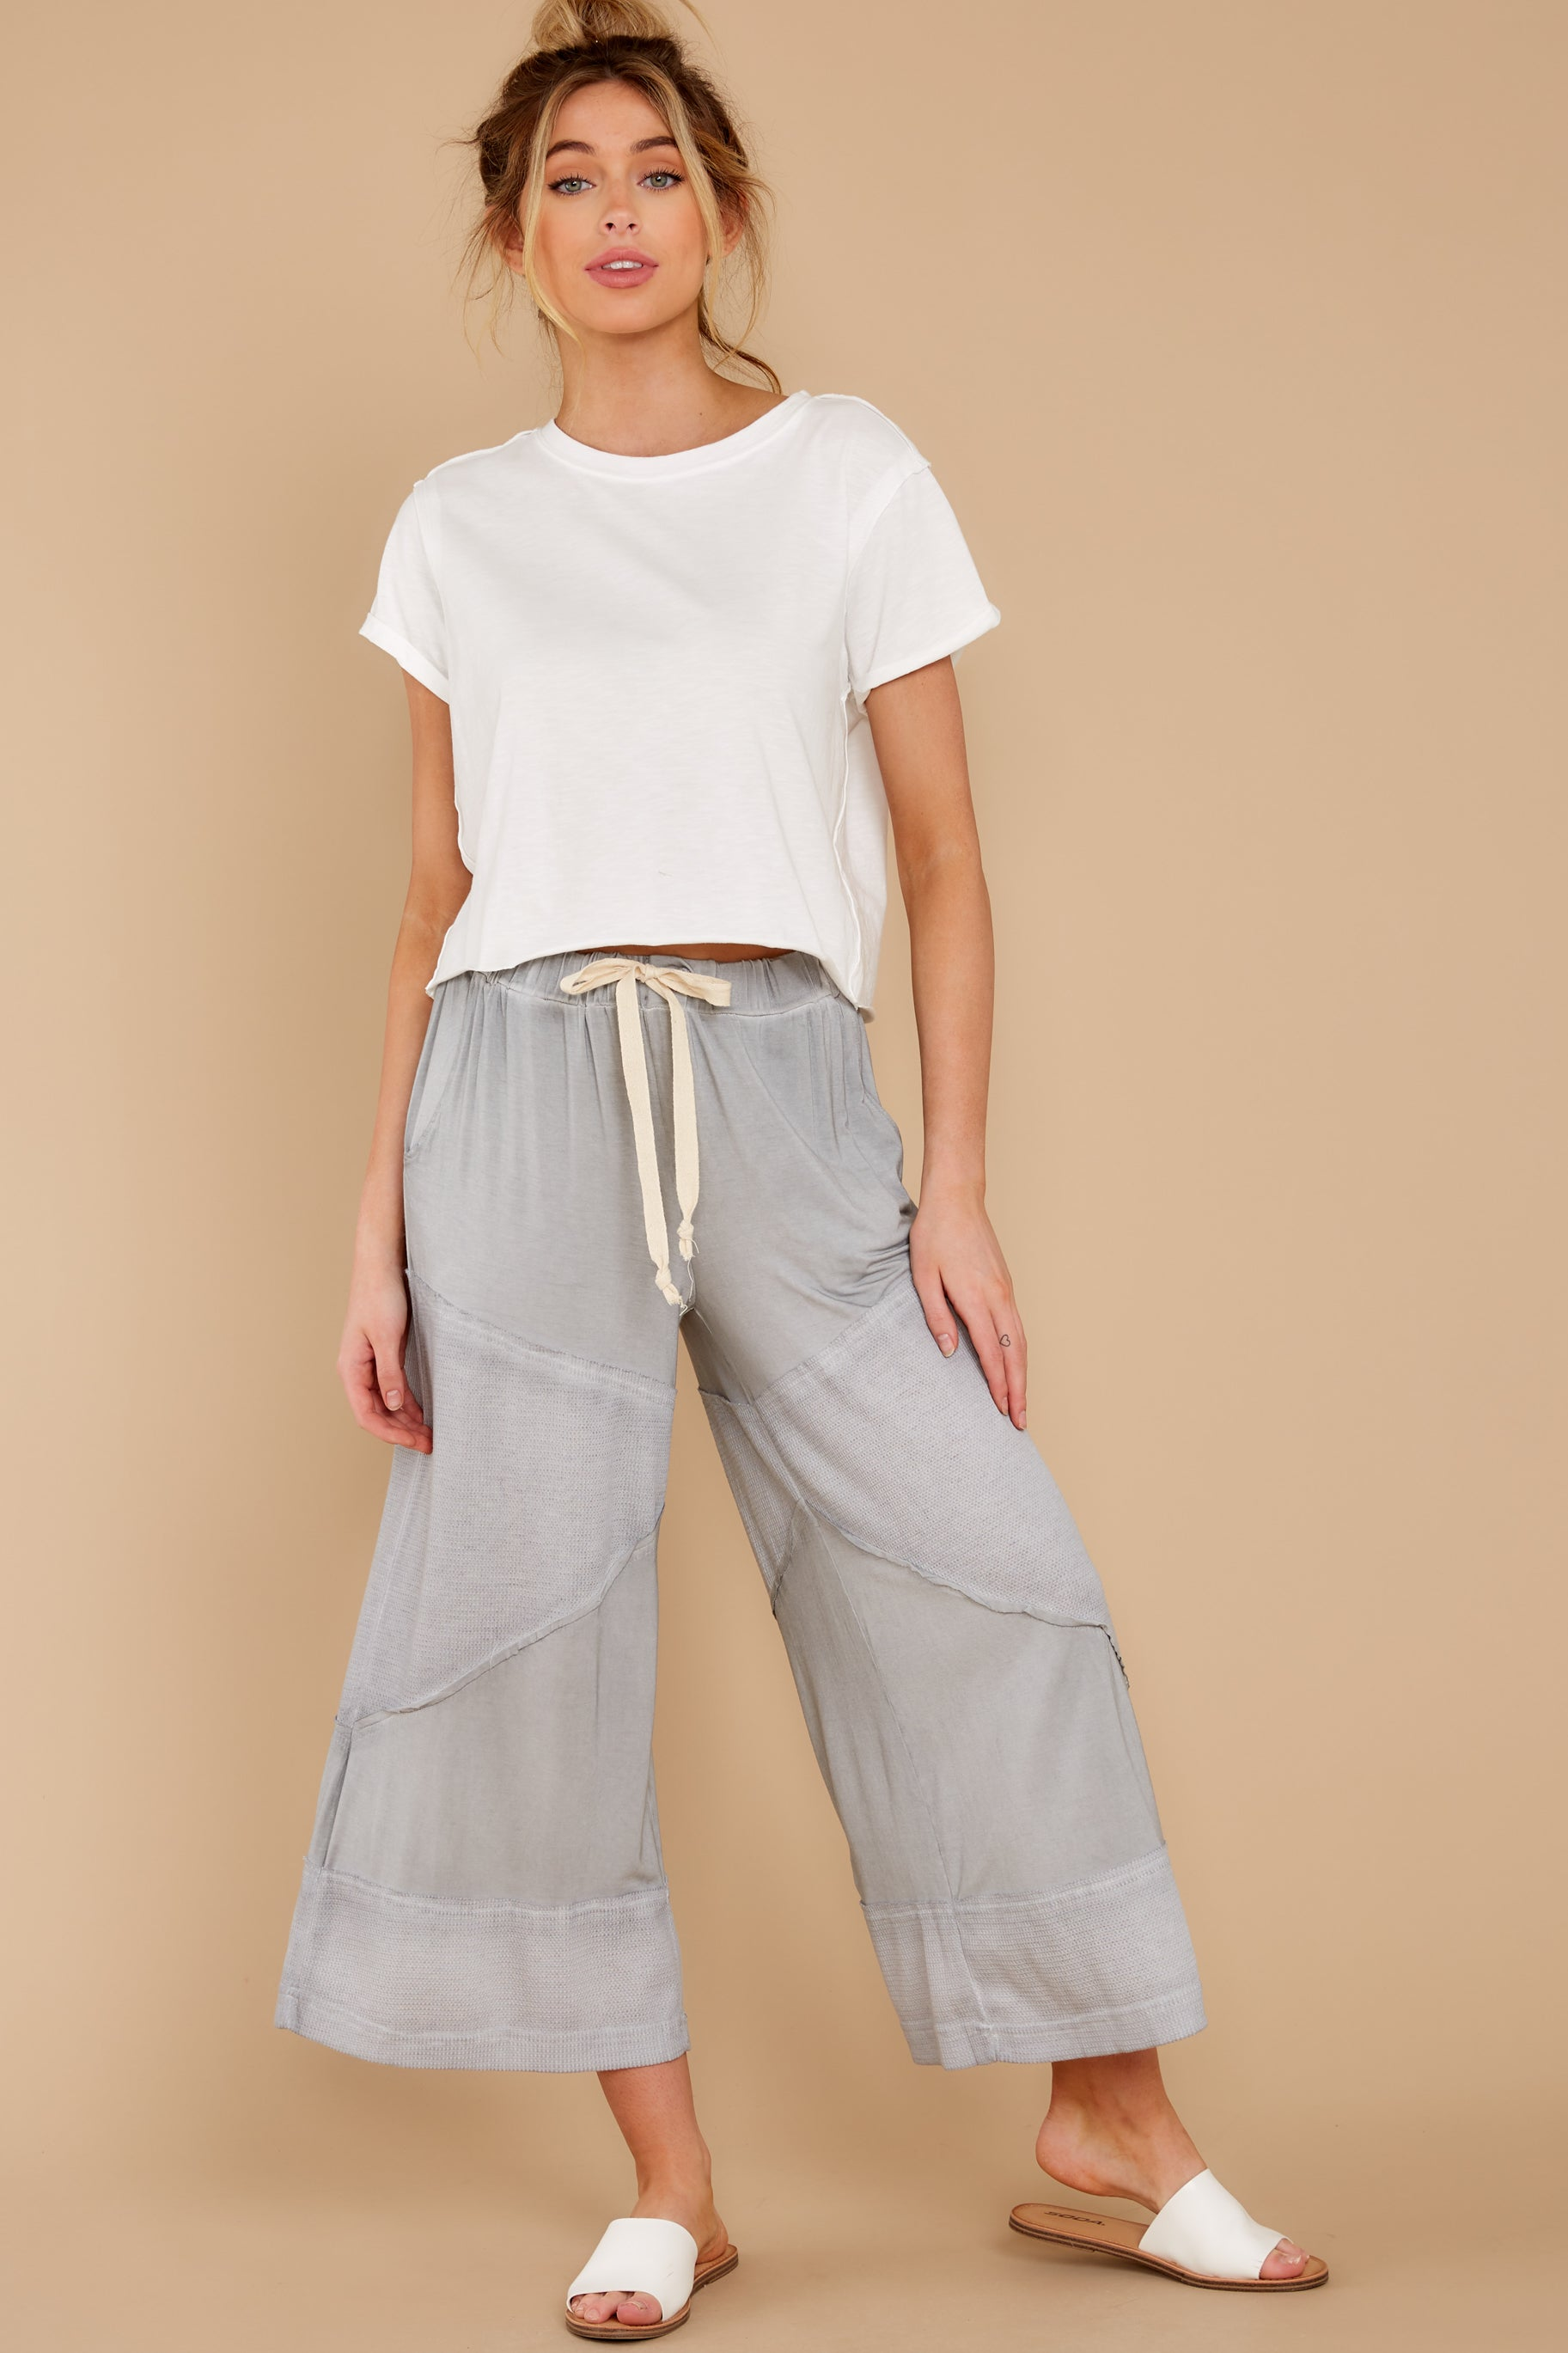 6 On The Other Side Dove Grey Pants at reddress.com